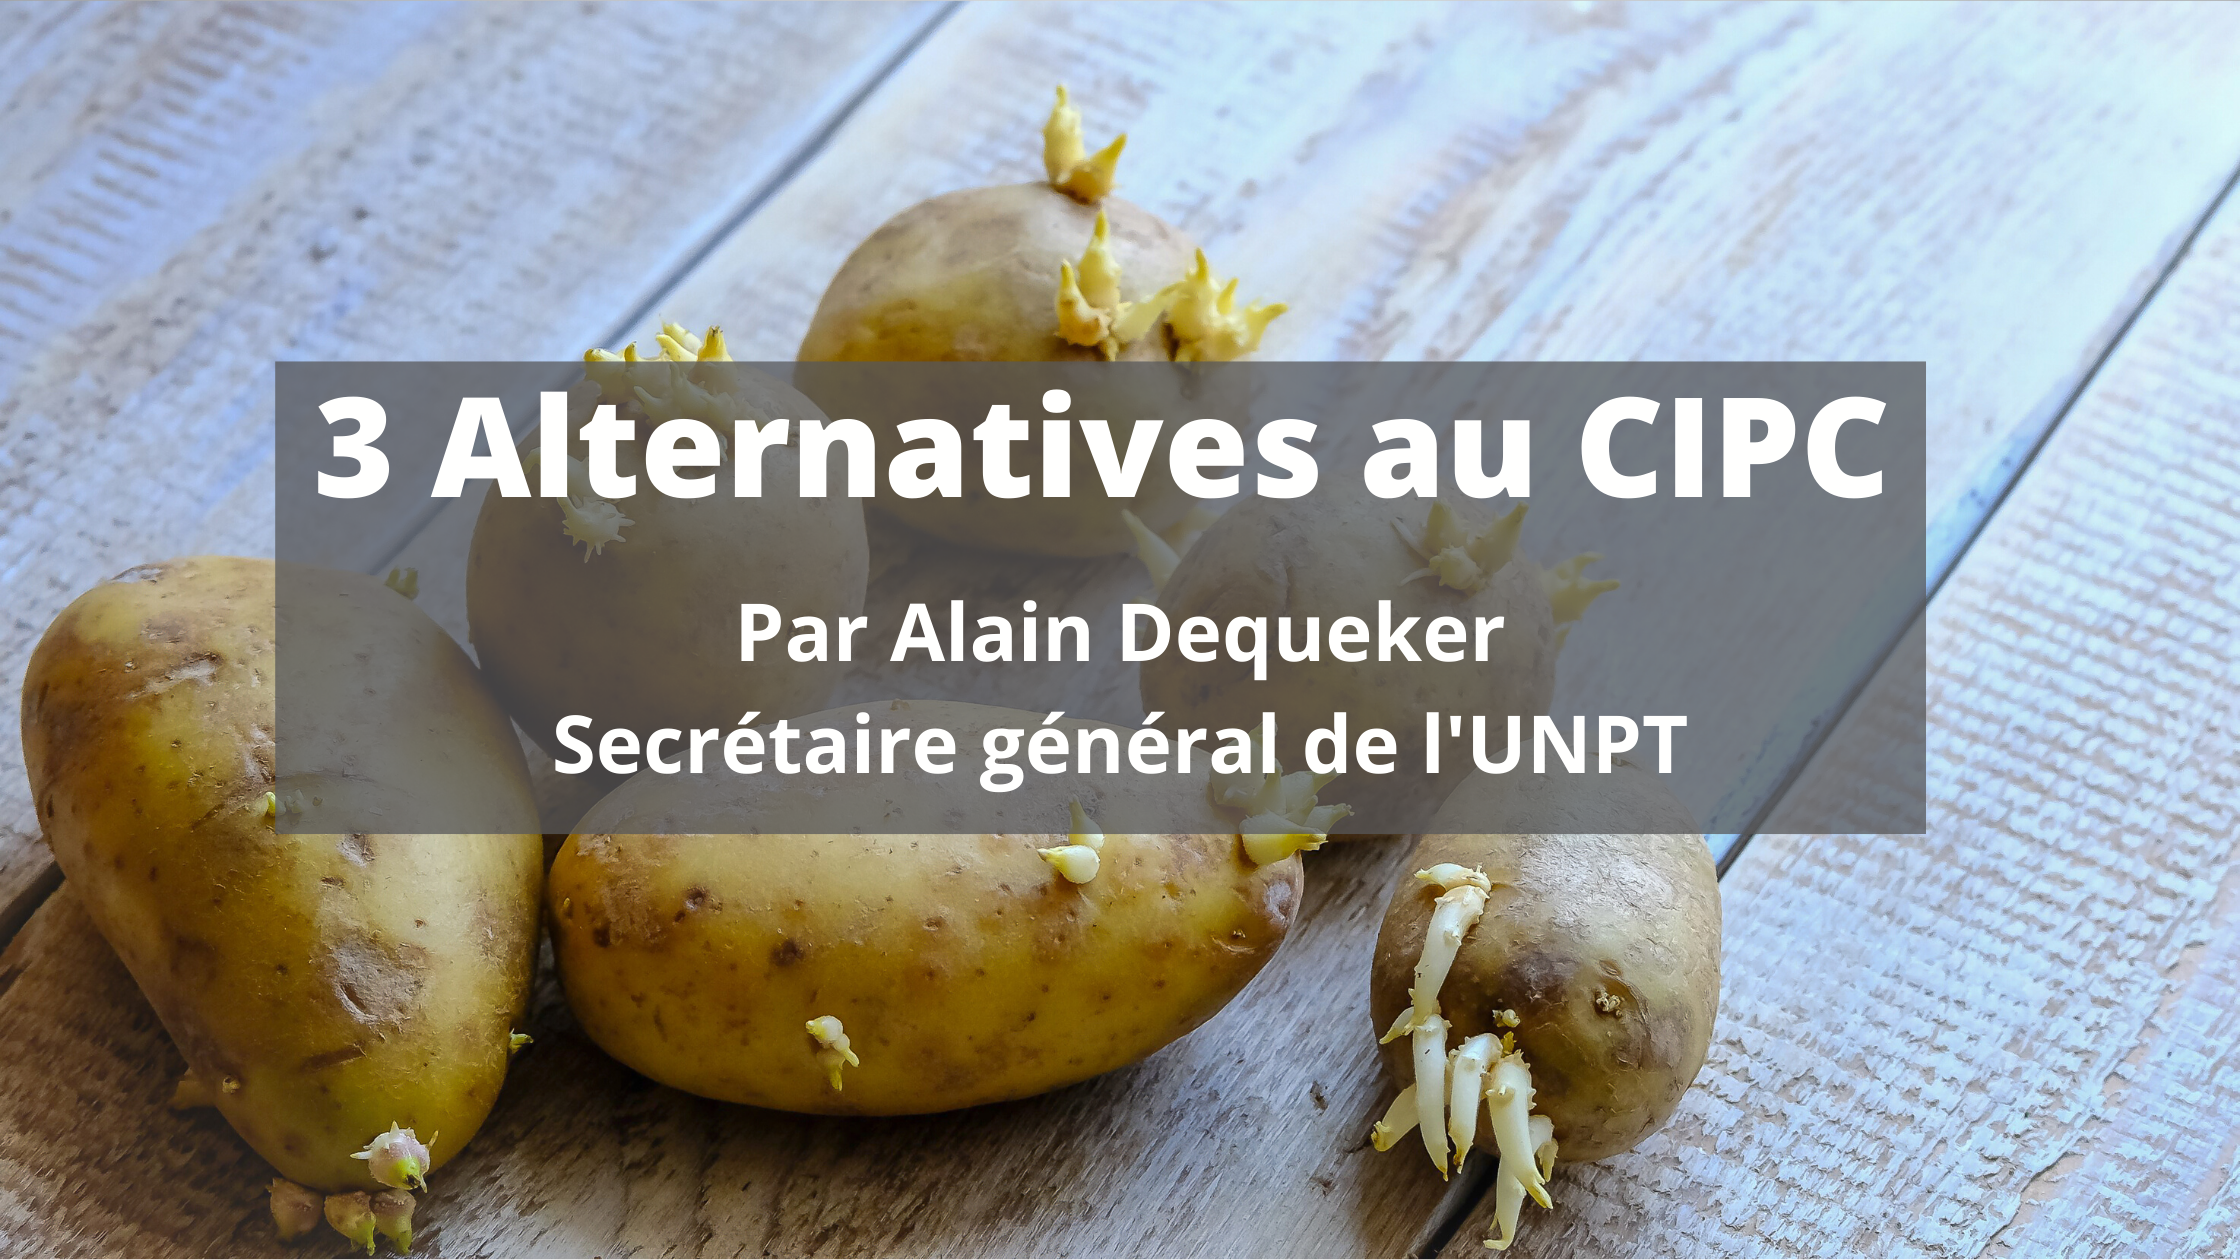 3 Alternatives au CIPC